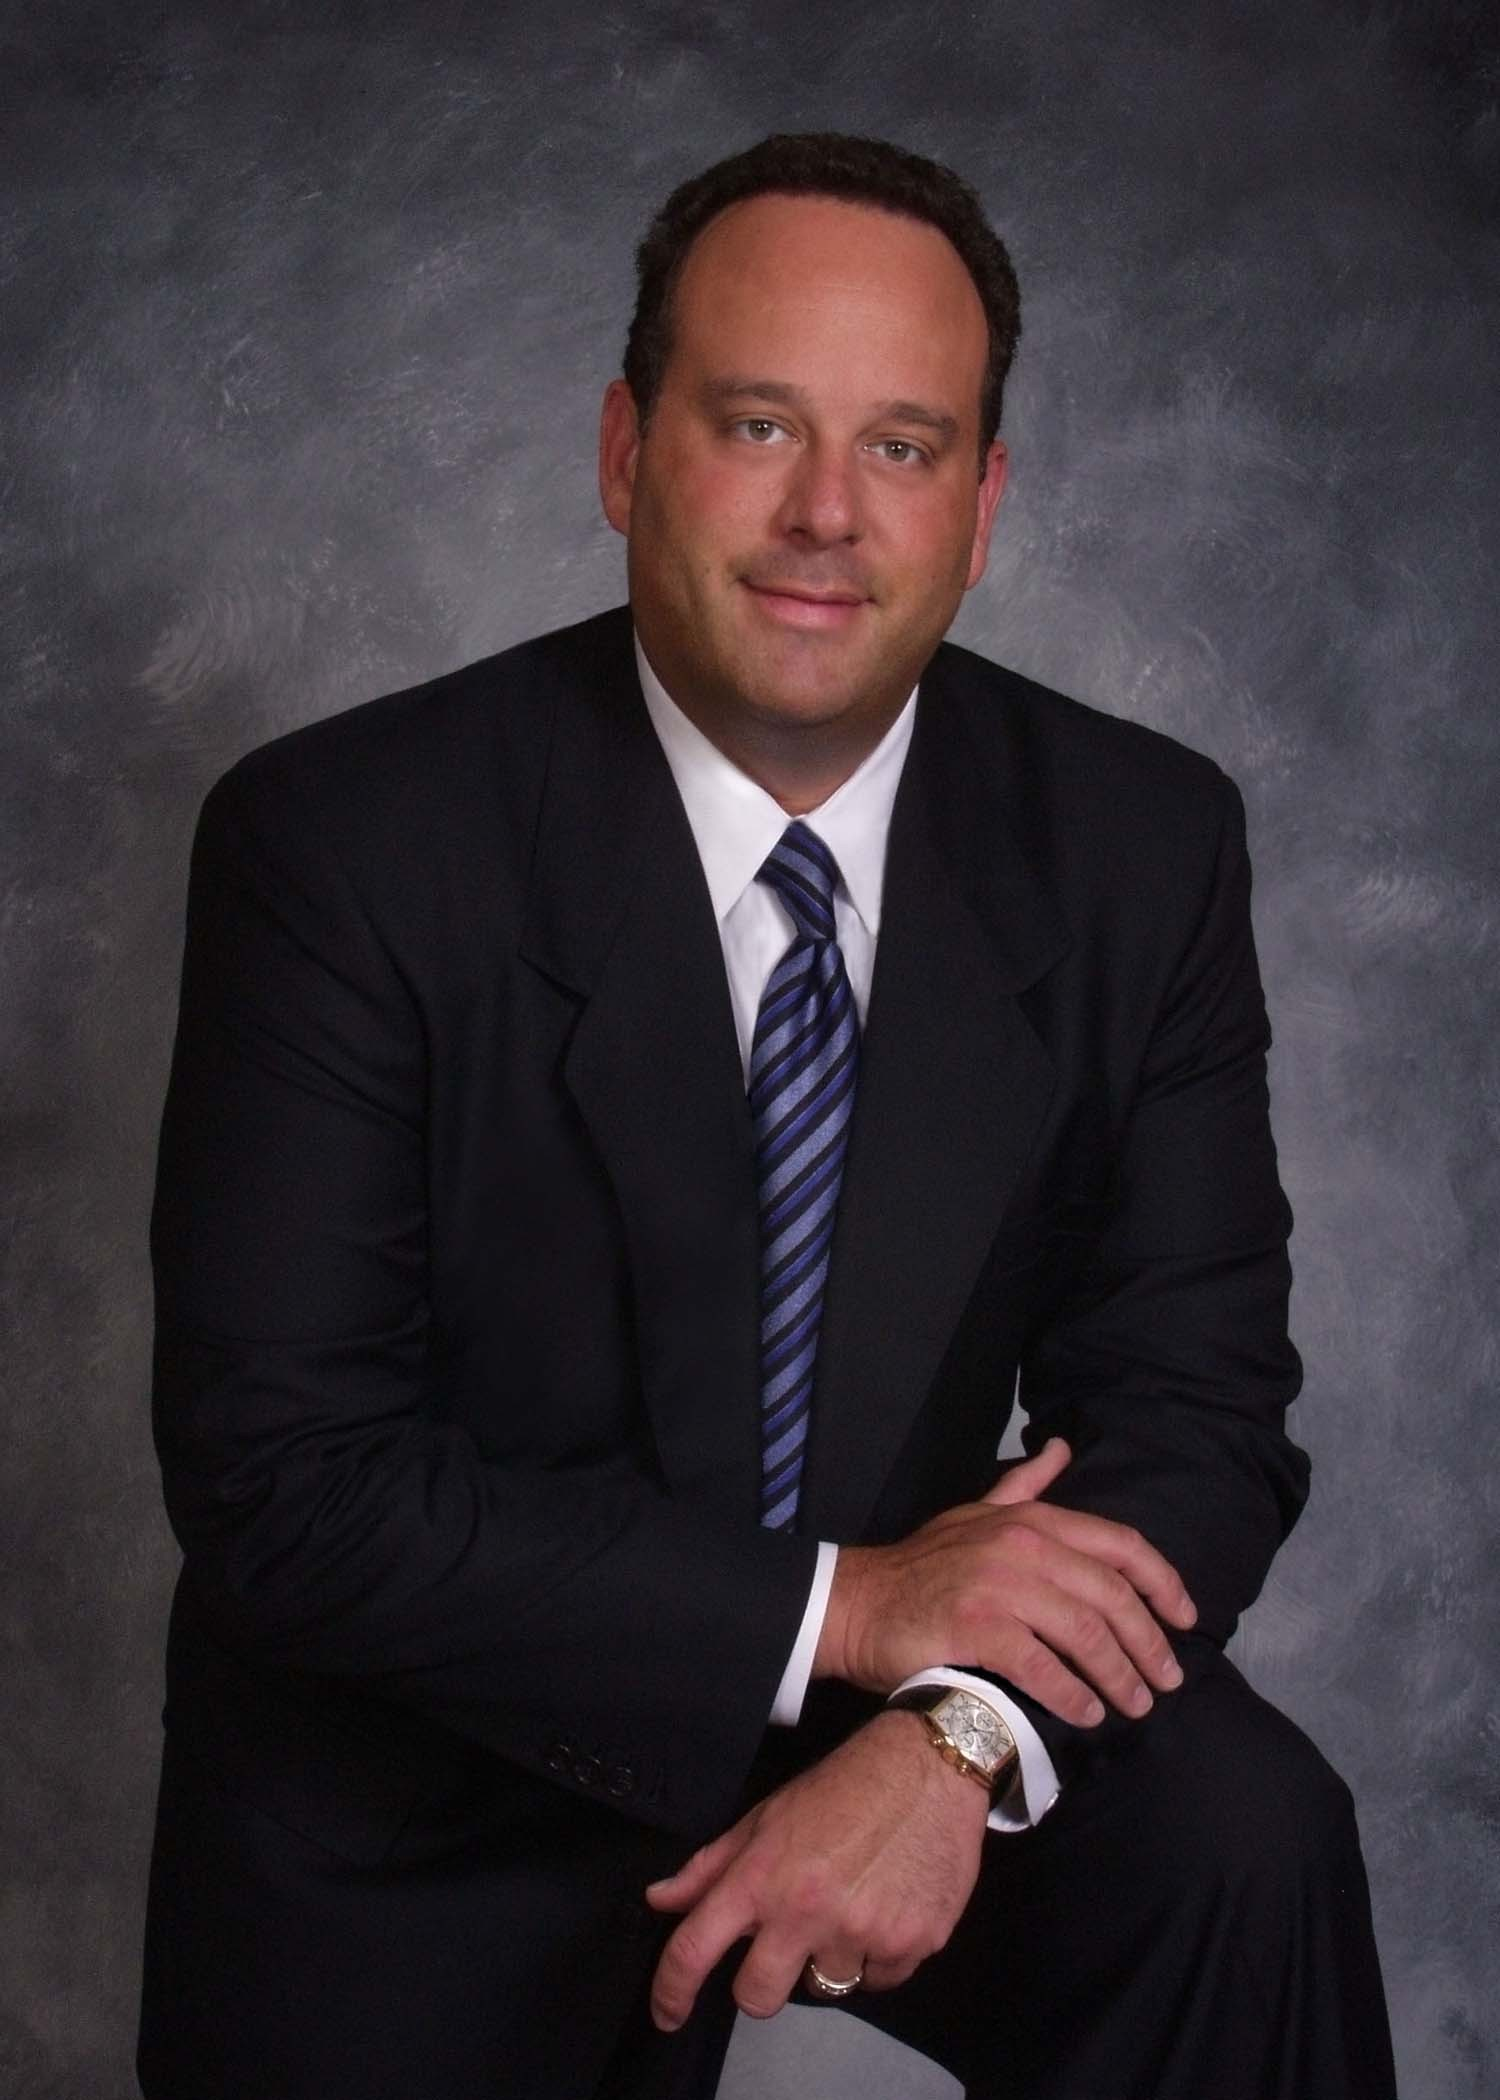 Personal Injury Law Offices of Joseph I. Lipsky Profile Picture